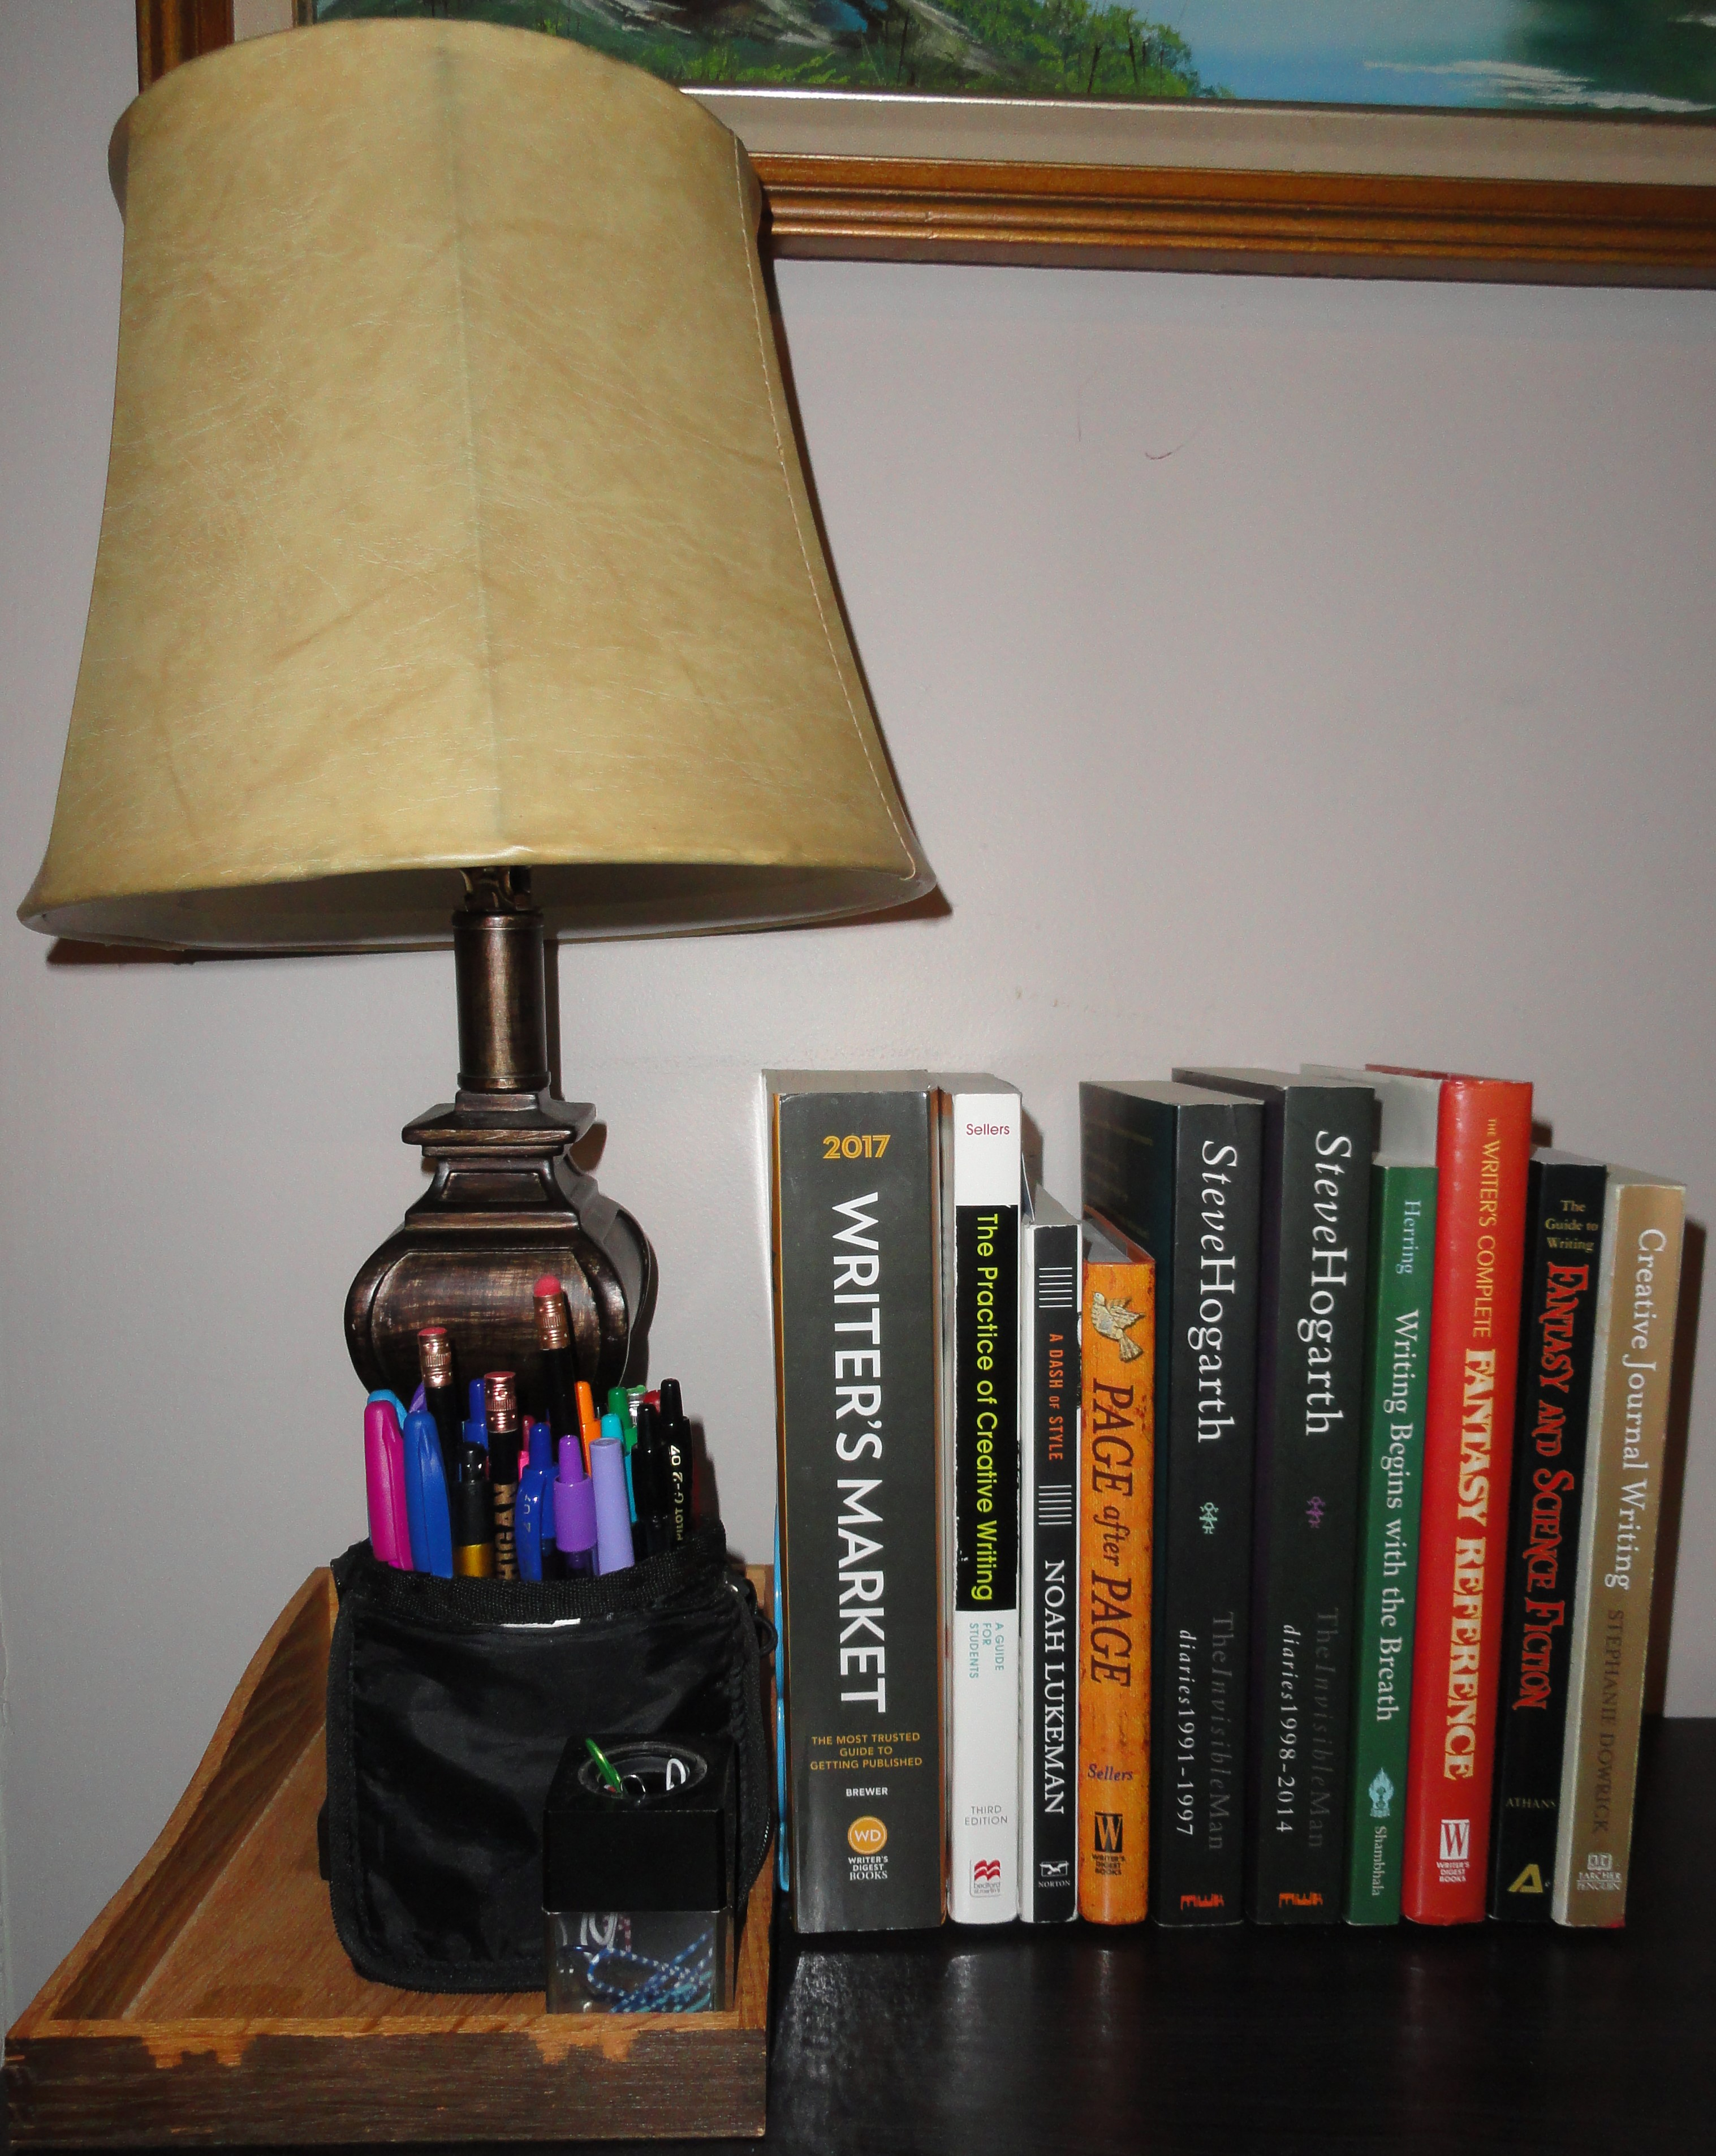 Photo of desk with lamp, writing reference books, Steve Hogarth books, writing utensils, and paper clip holder.